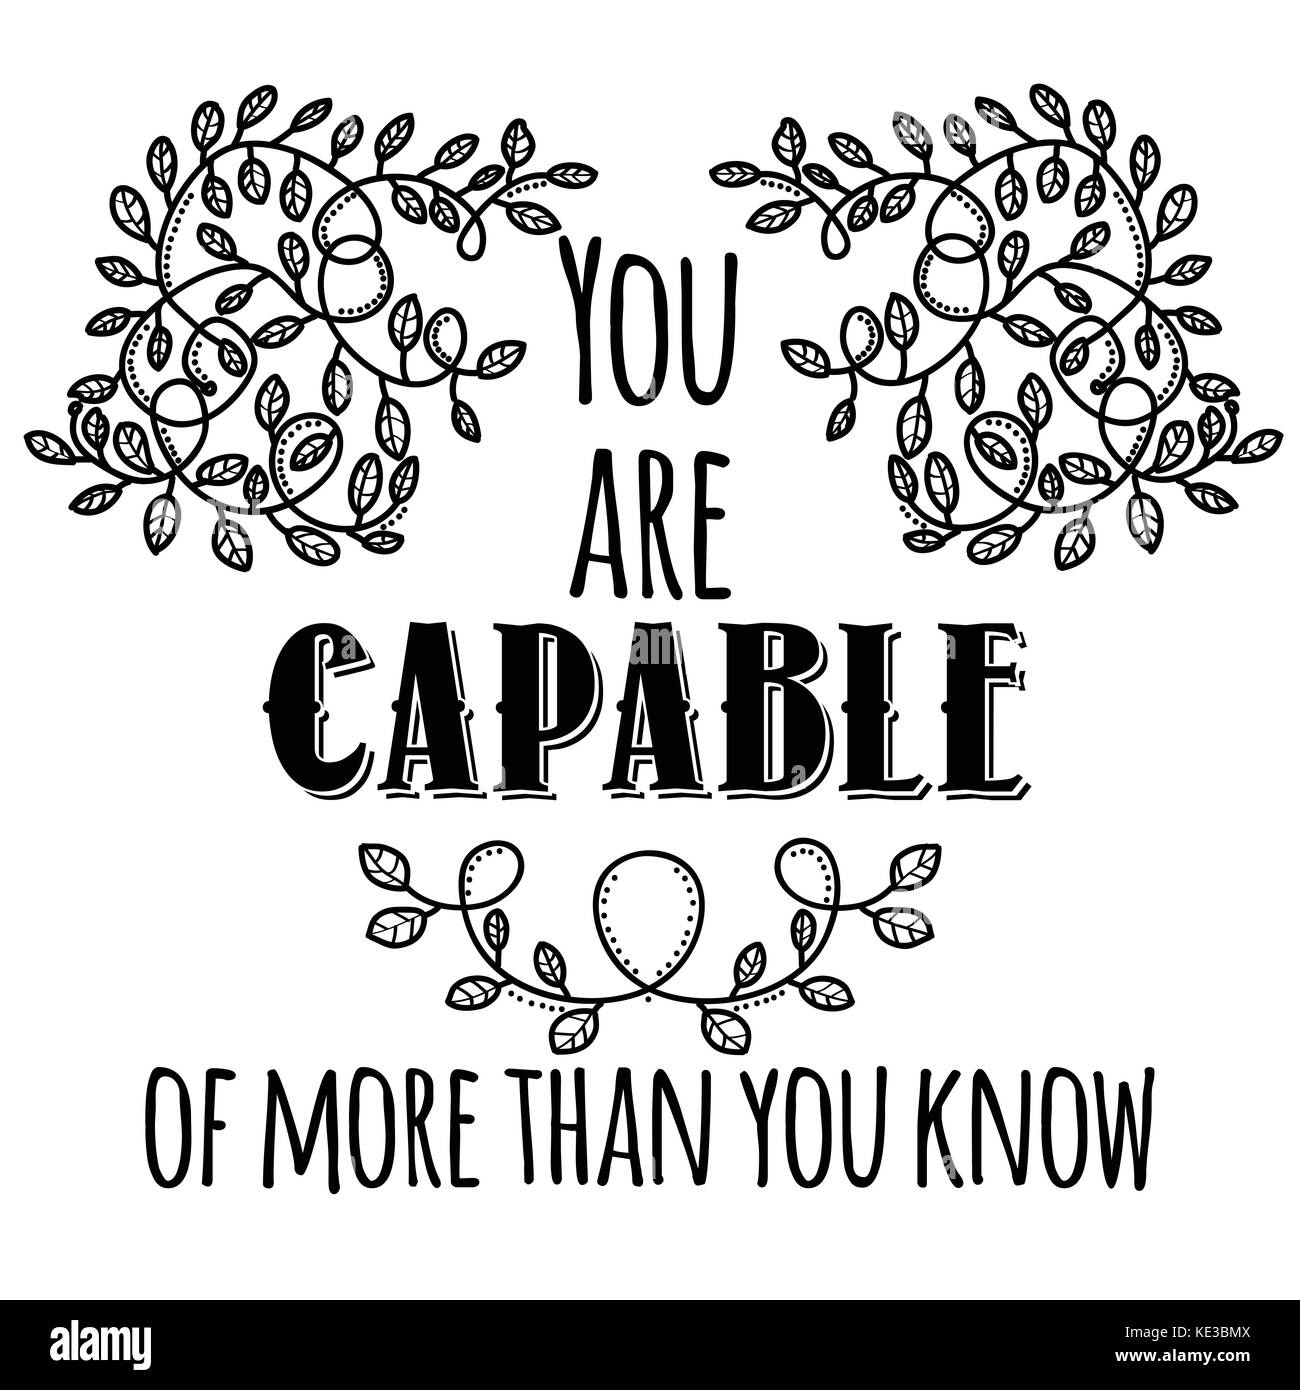 You are capable of more than you know. Inspiring Creative Motivation Quote. Vector Typography Banner Design Concept - Stock Image